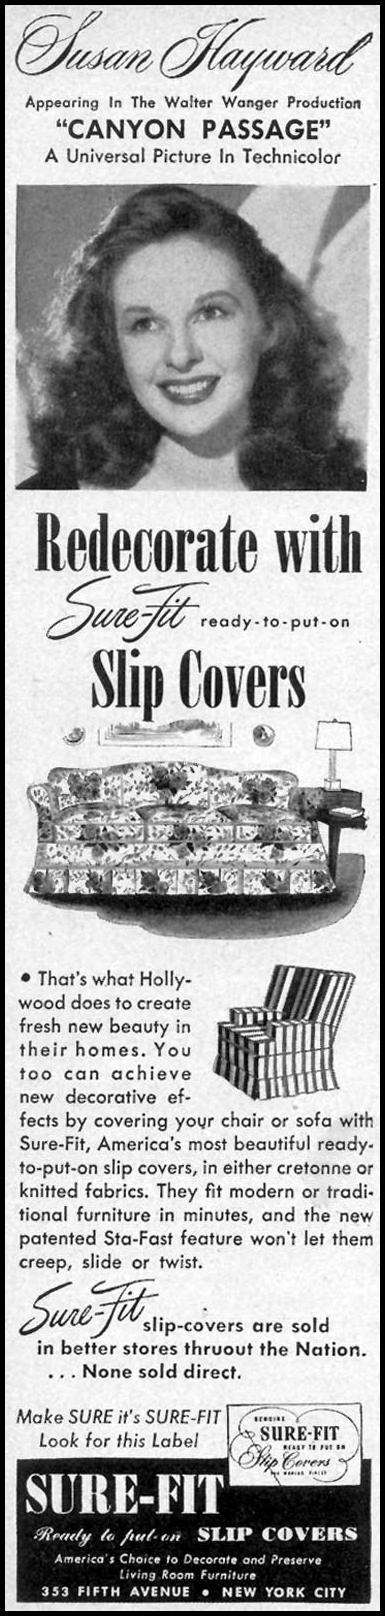 SURE-FIT SLIP COVERS WOMAN'S DAY 09/01/1946 p. 62